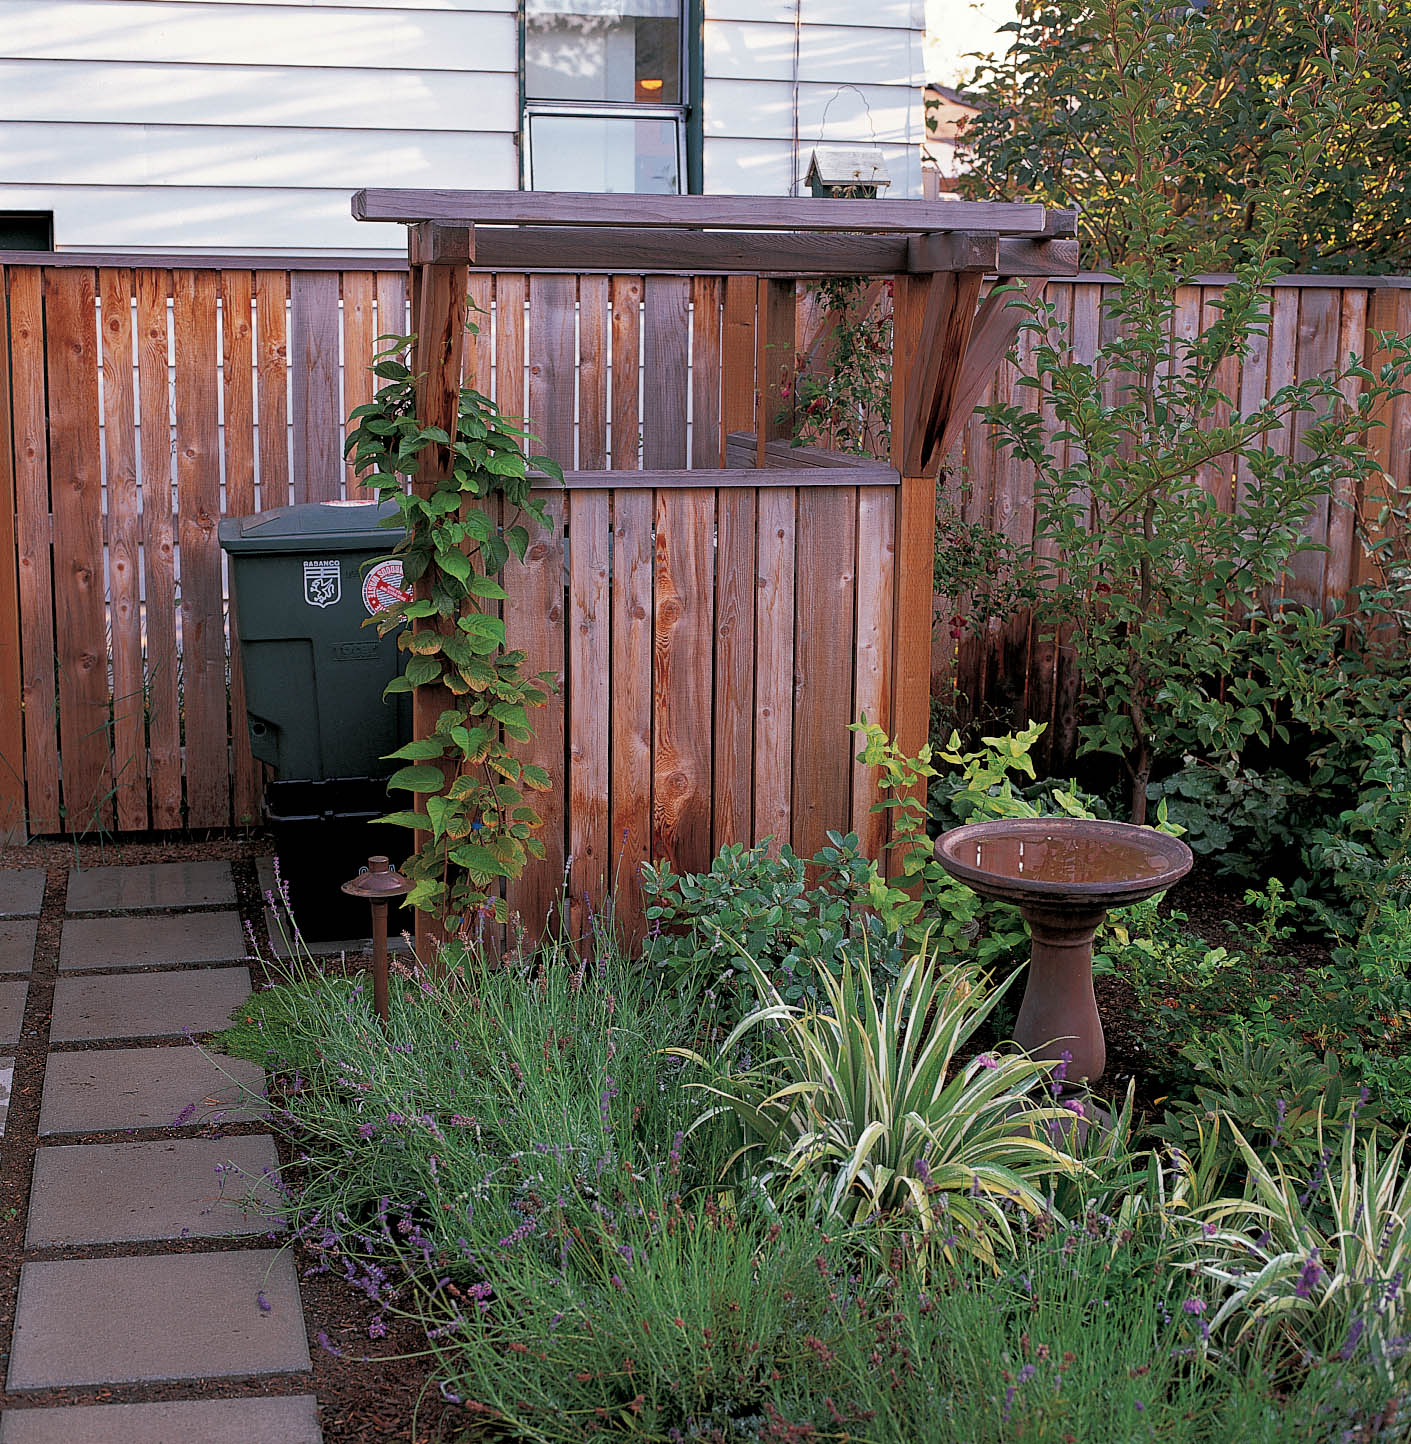 Danger garden landscaping for privacy innovative ways to turn your outdoor space into a - Garden ideas to hide fence ...